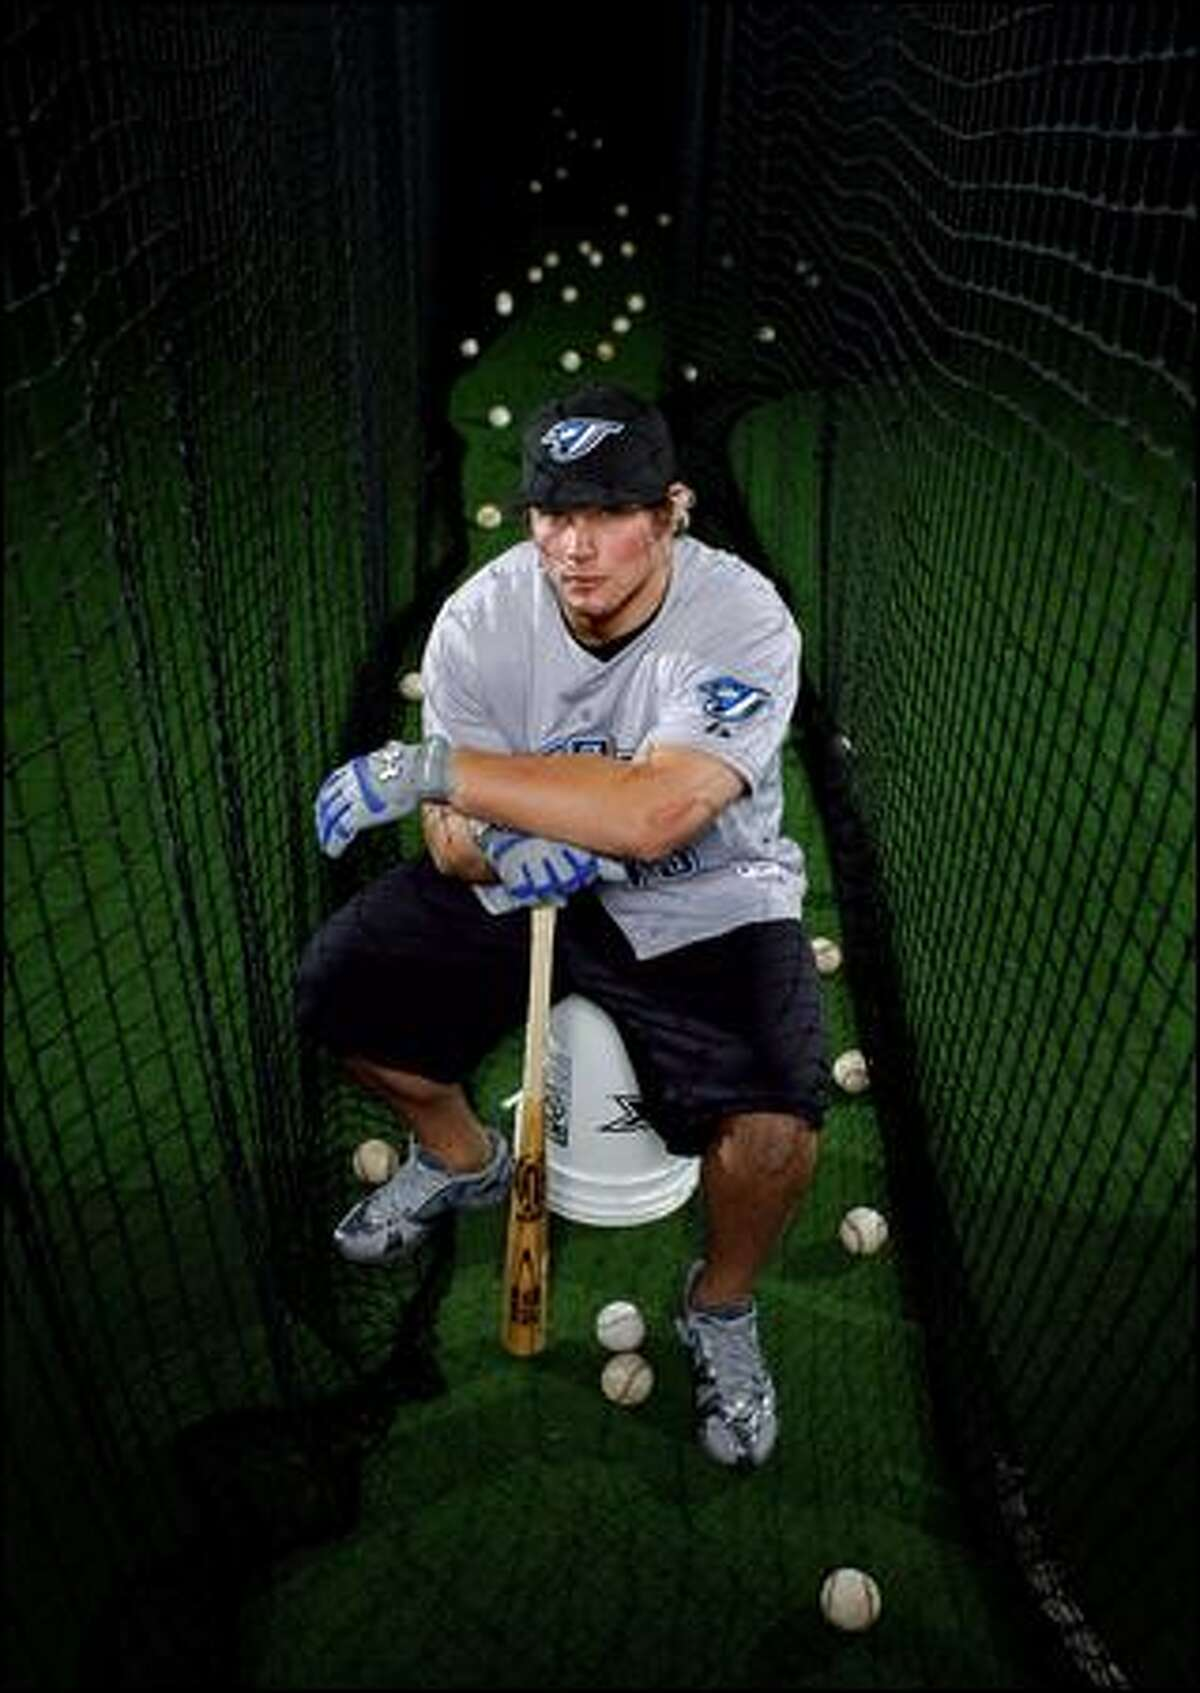 Toronto Blue Jays prospect Travis Snider takes a break at Everett's Rage Cage, where he trained as a student at Jackson High School.